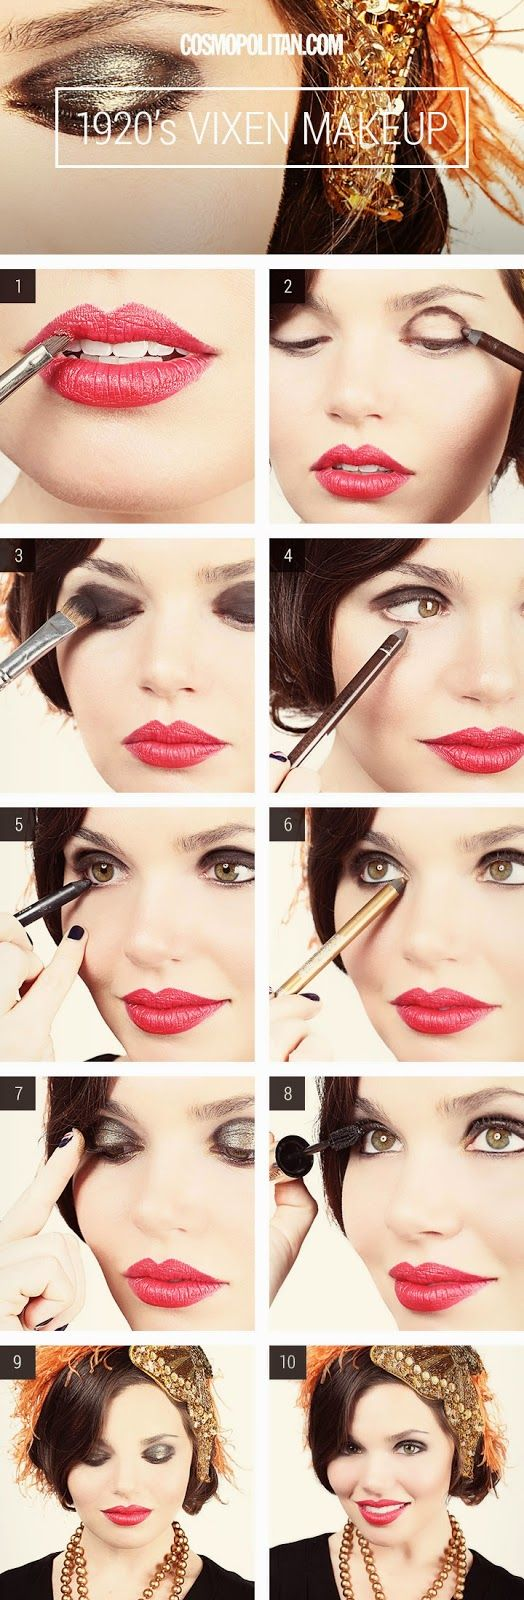 Bright red lips, instead of dark, also make for a great 1920's inspired look when paired with natural toned eyeshadow. This is a more subtle statement – but don't be afraid to experiment until finding a style that suits you best!